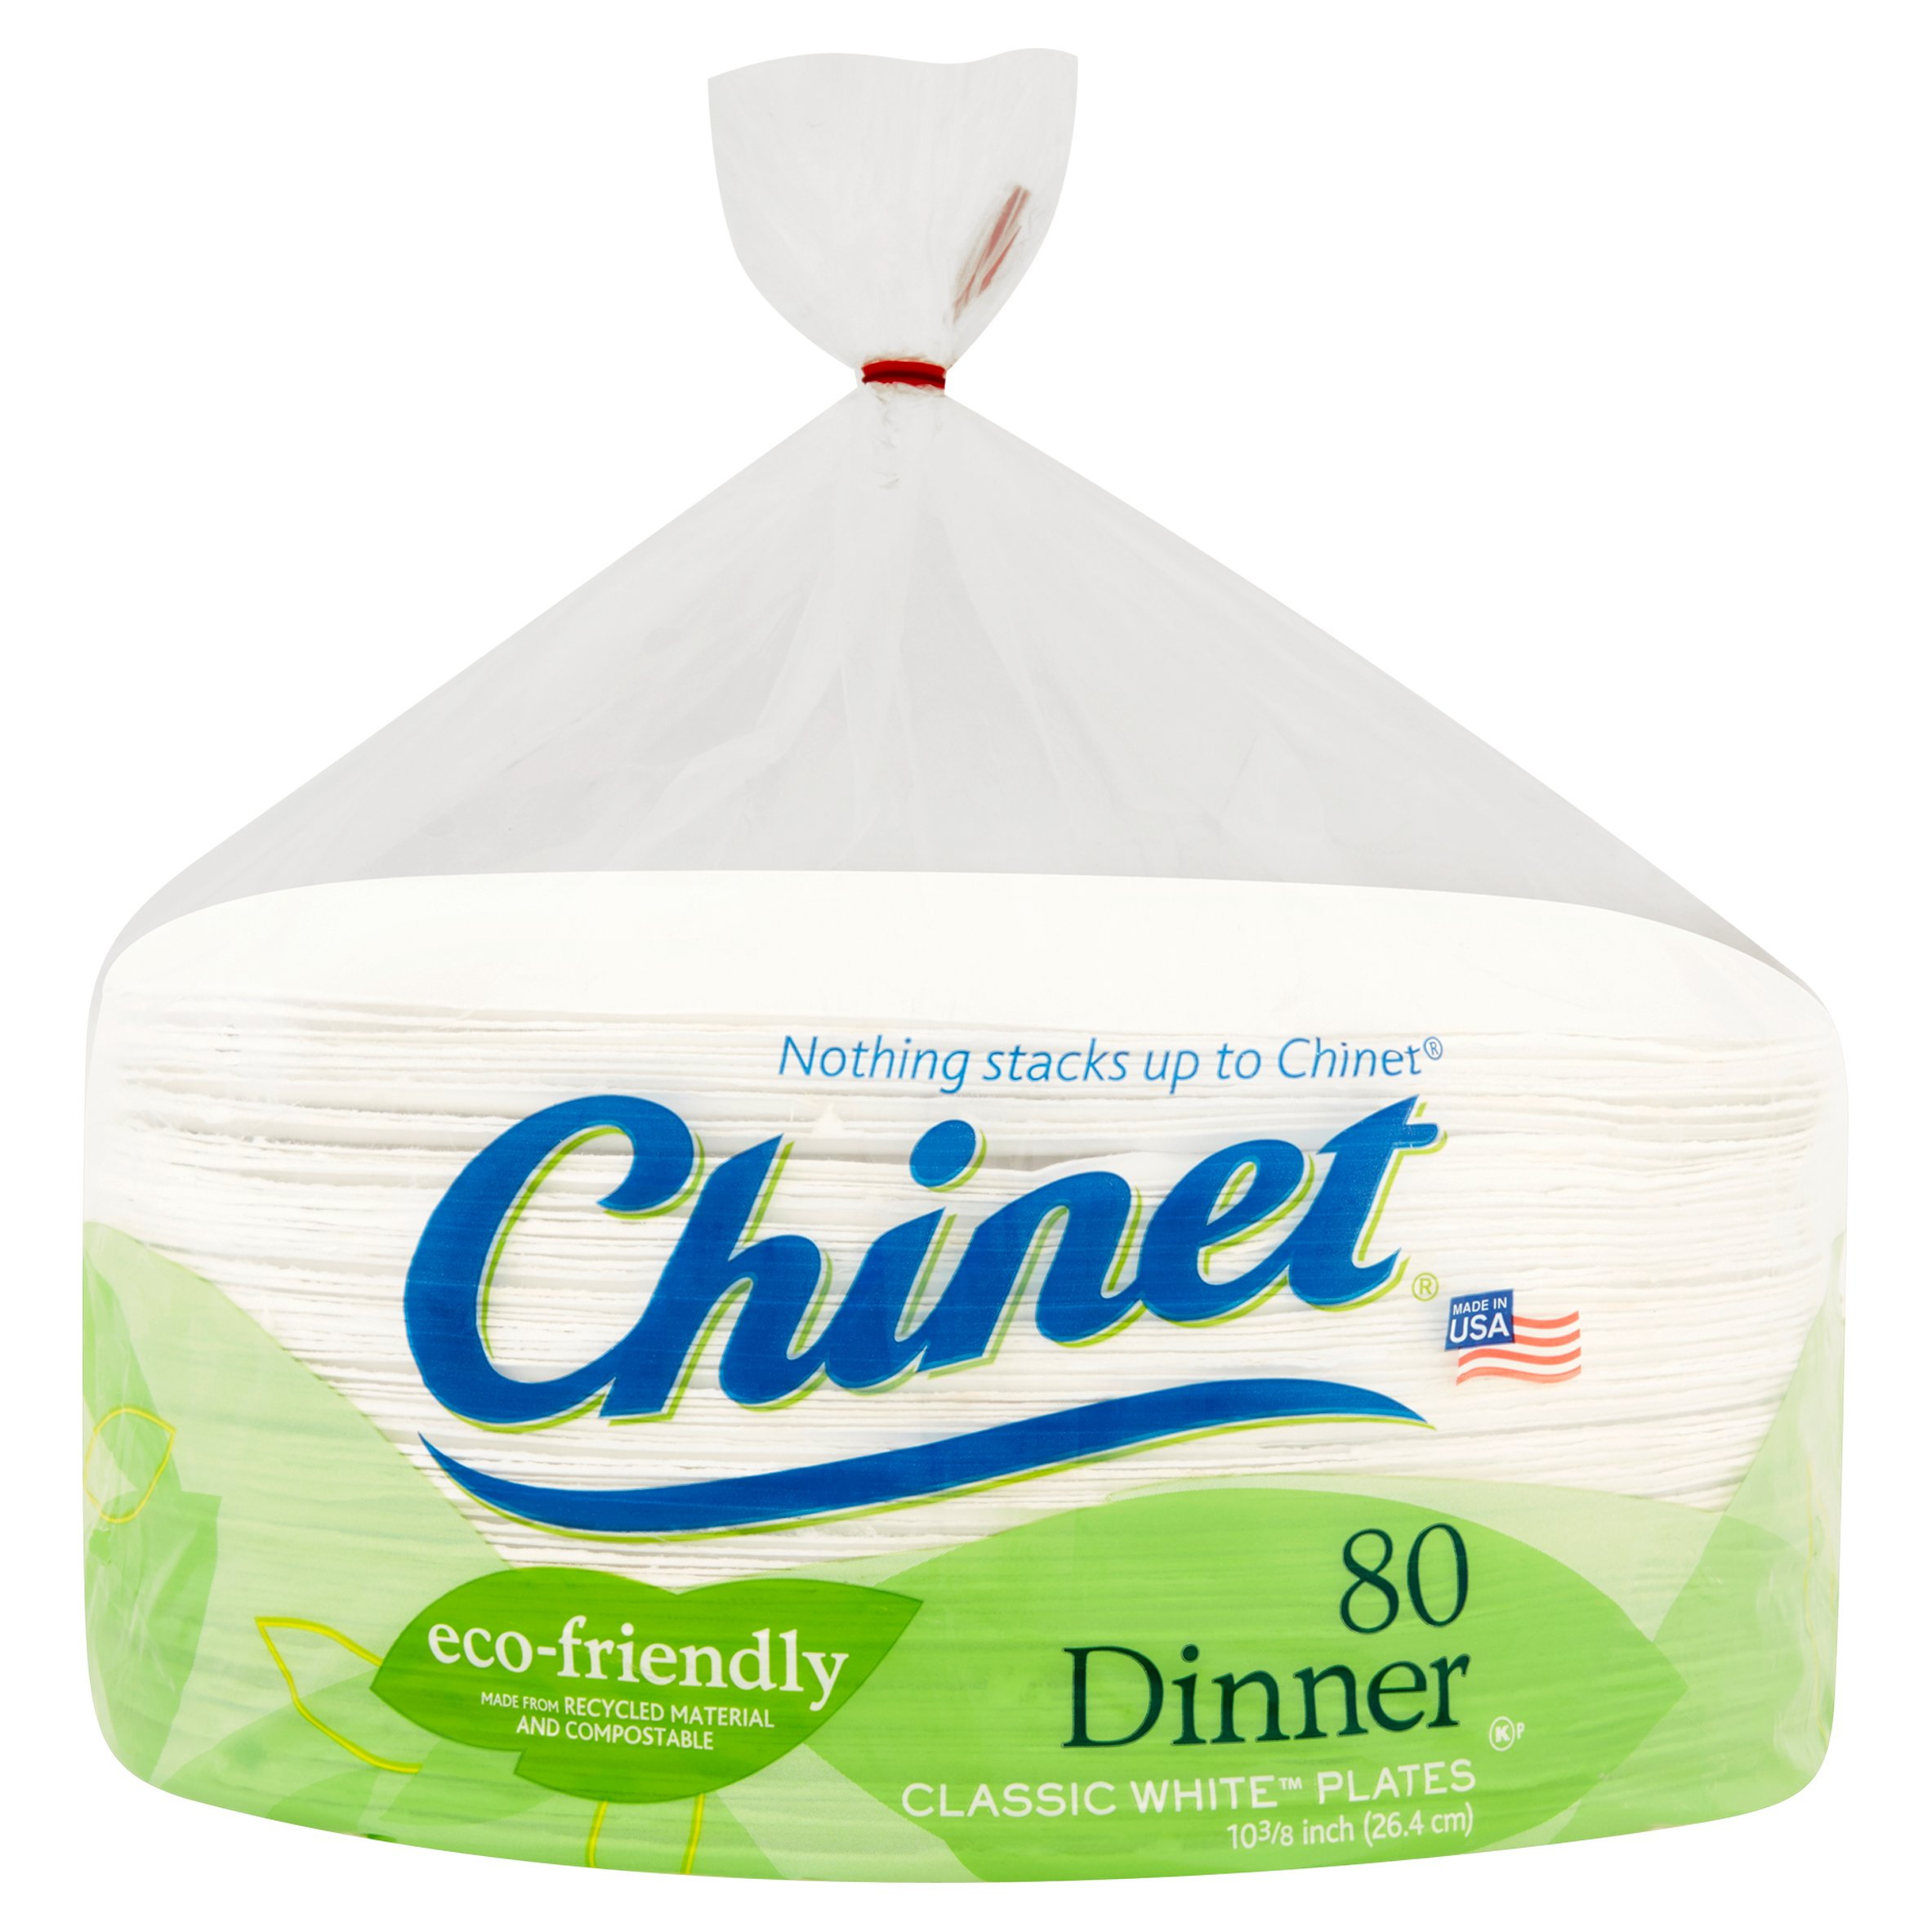 """Chinet Dinner Classic White Plates, 10 3/8"""", 80 Count"""